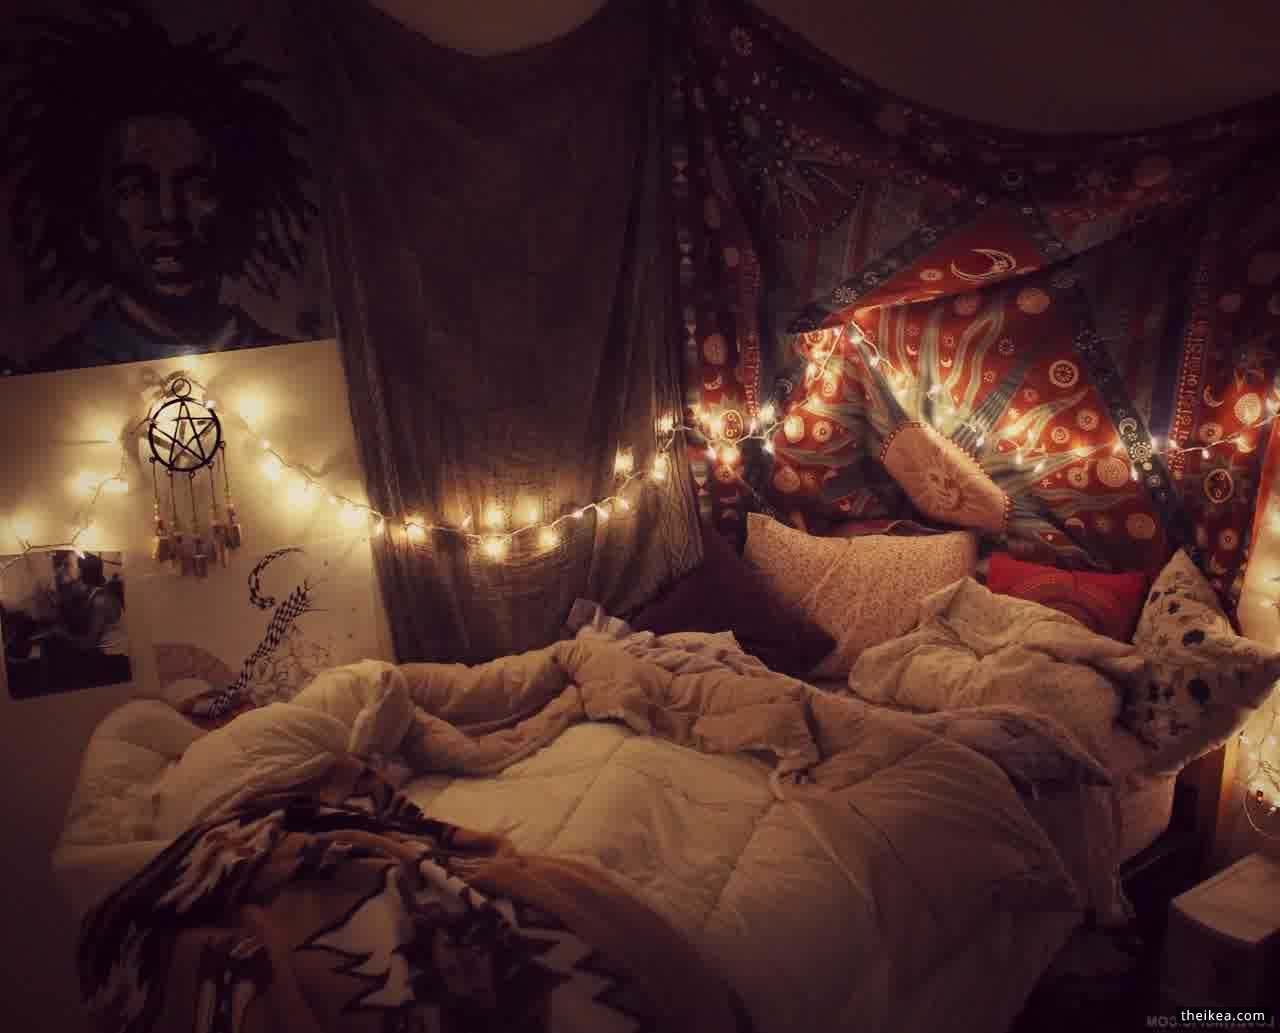 Hipster Bedroom - http://www.theikea.com/ikea-wall-decor-ideas/hipster-bedroom.html